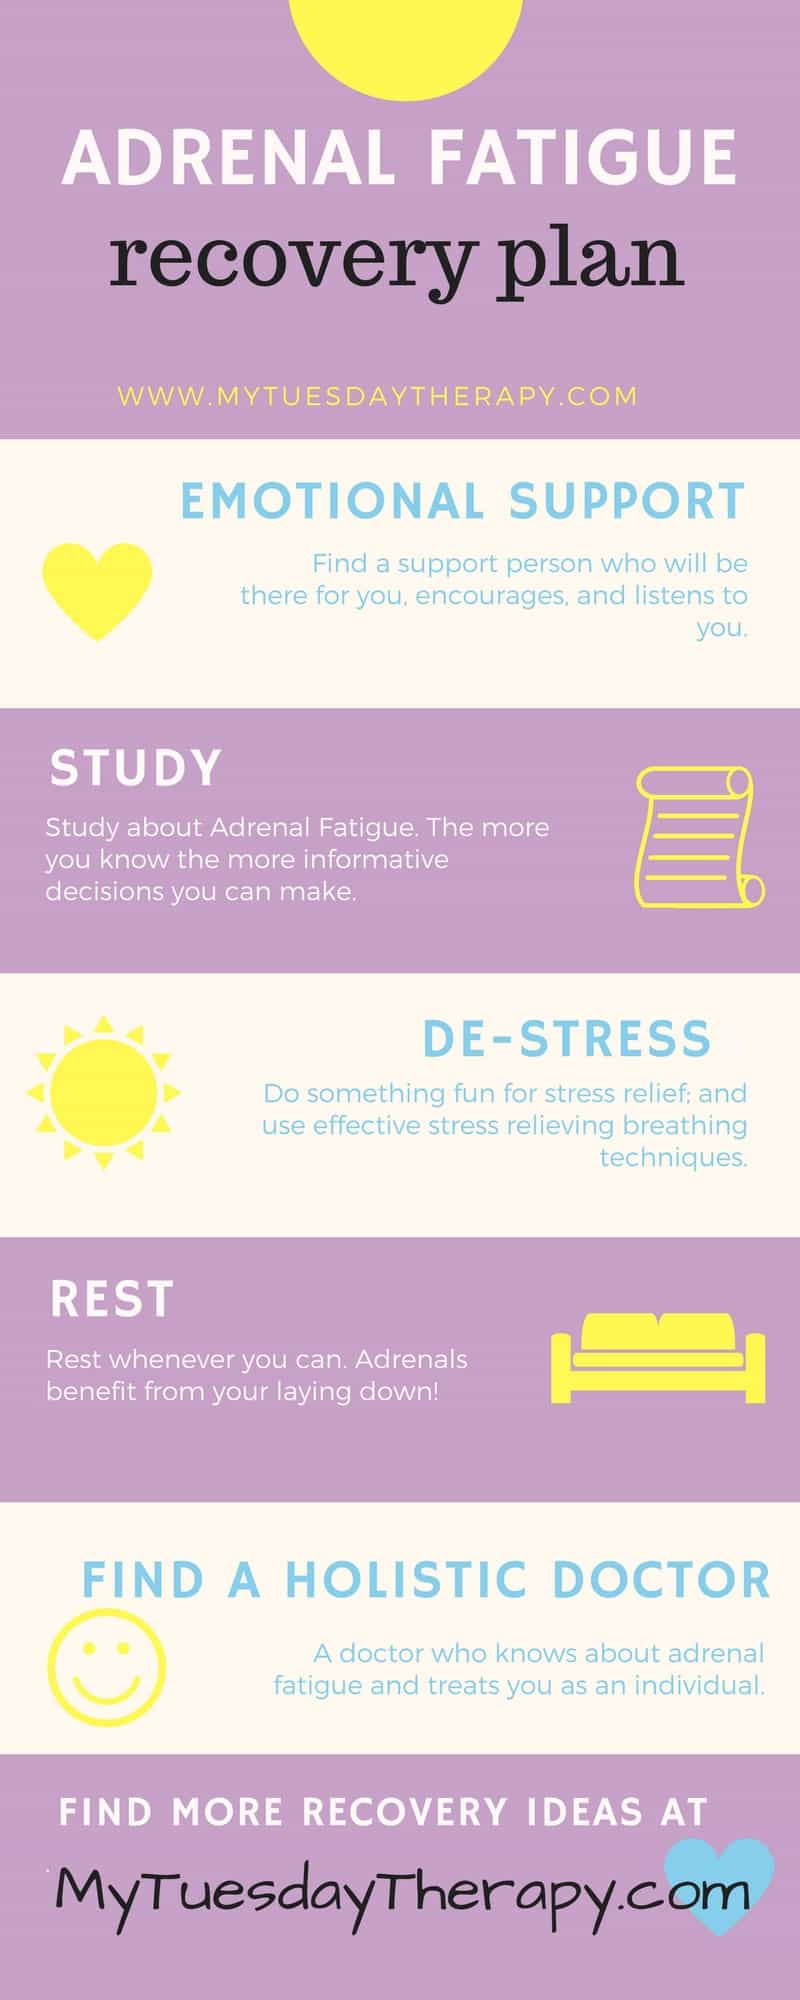 This plan helped me to recover from a severe adrenal fatigue. Click through for more ideas for adrenal fatigue recovery at https://www.mytuesdaytherapy.com/adrenal-fatigue-recovery-plan/ | Adrenal Fatigue Recovery Plan Infographic | HPA axis Dysregulation |